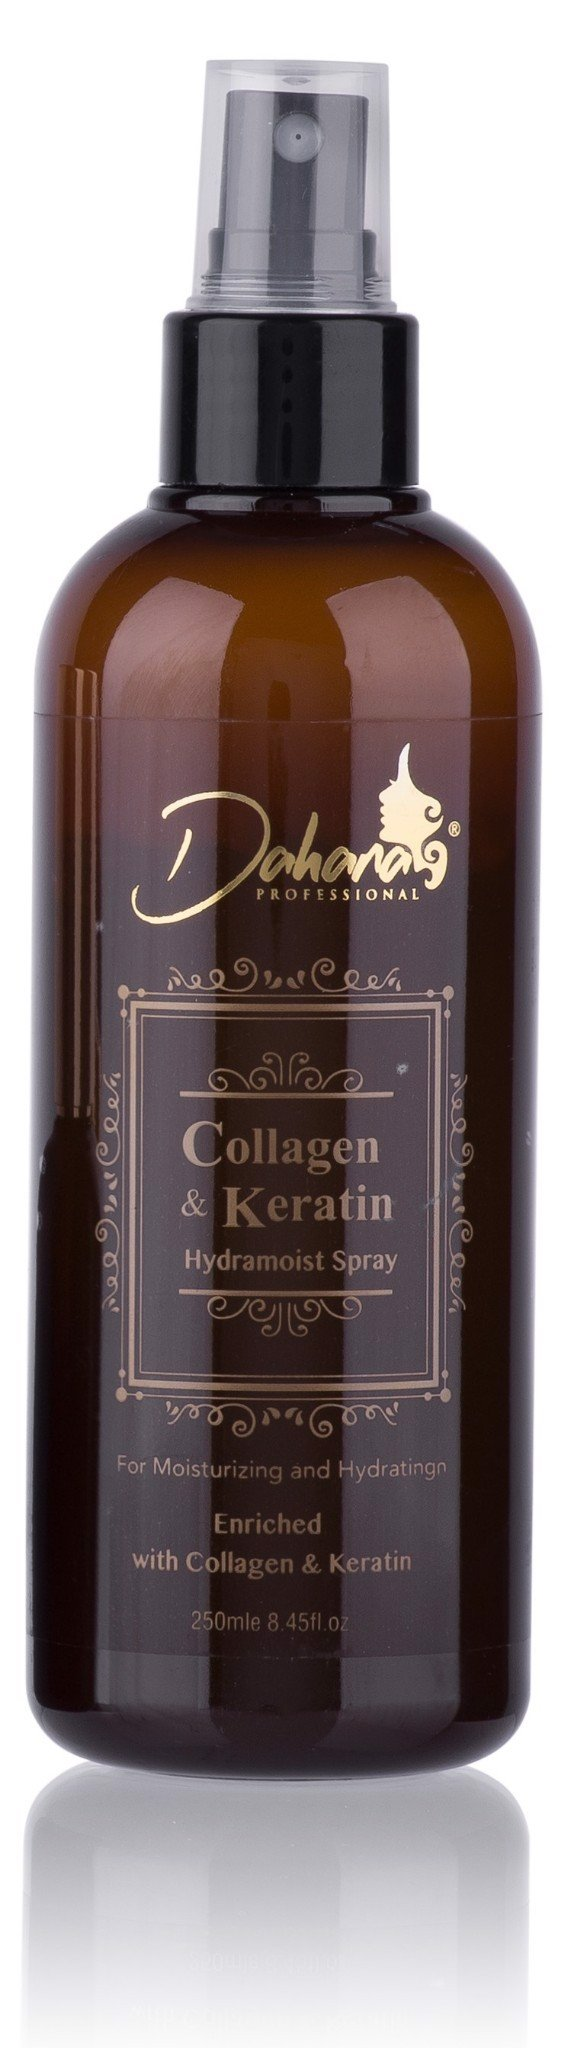 Collagen and Keratin Hydramoist Spray (xịt dưỡng 4 lớp)